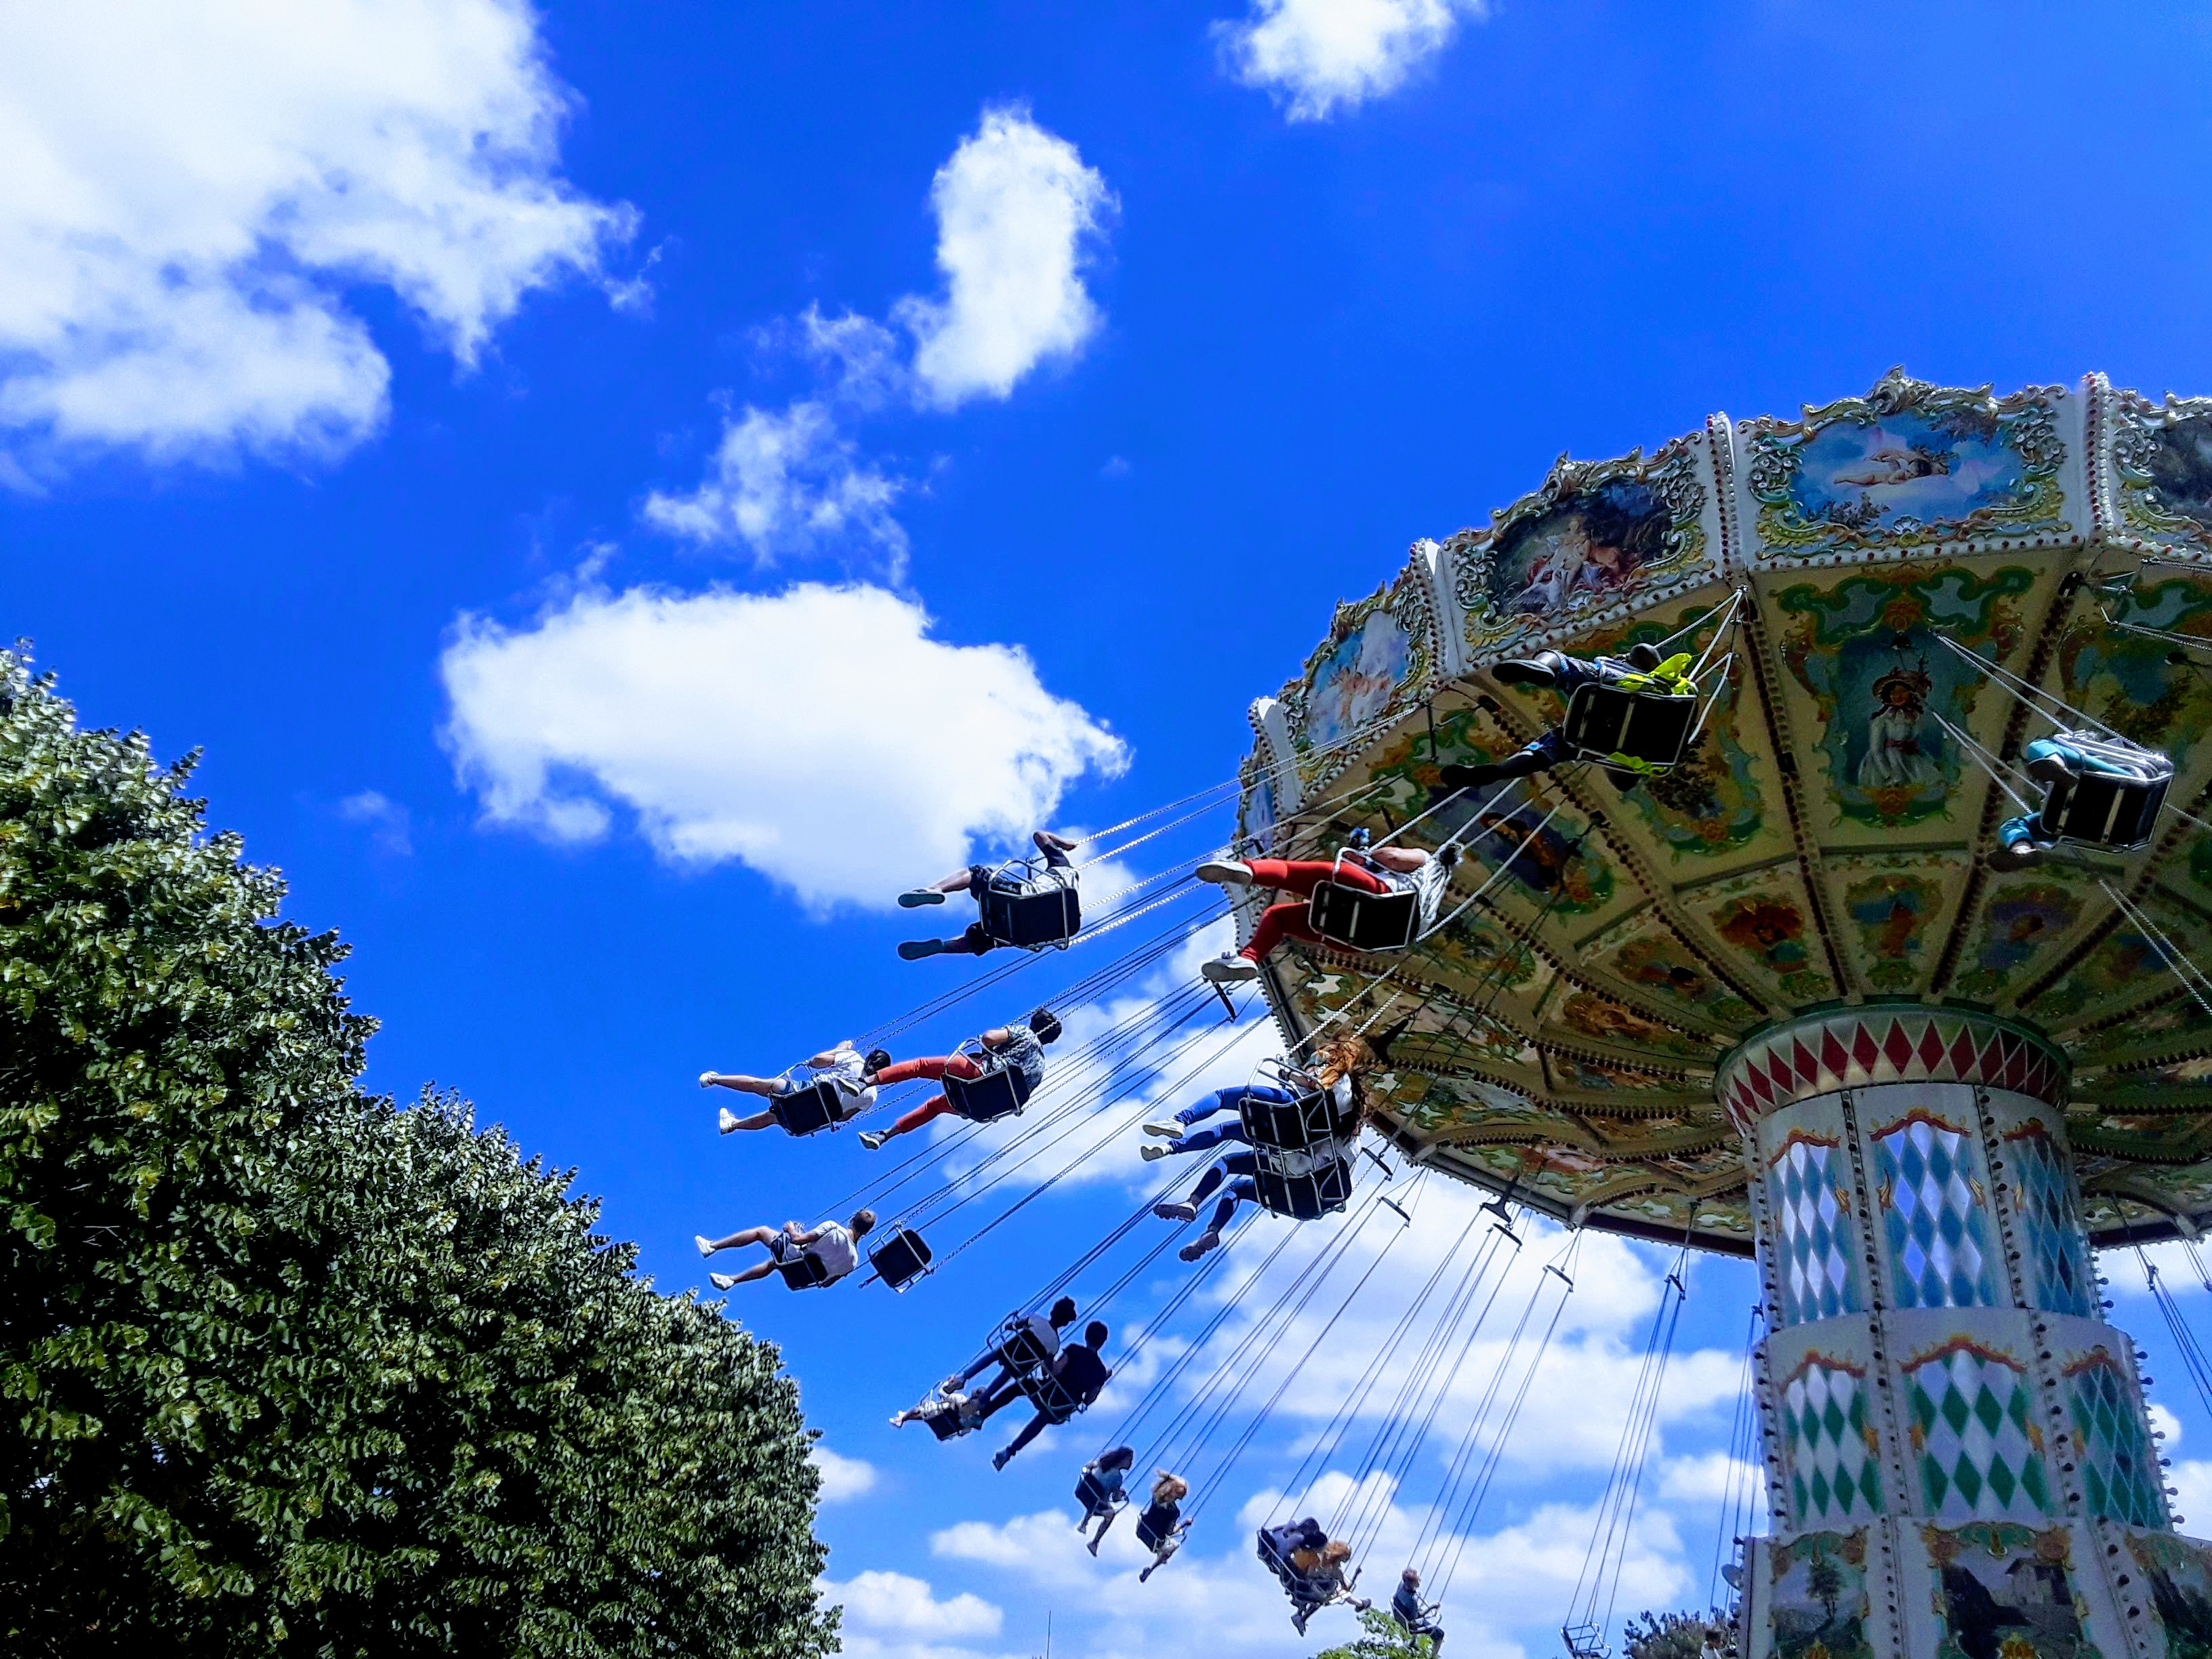 Thrills in the Sky by Tickets for Four